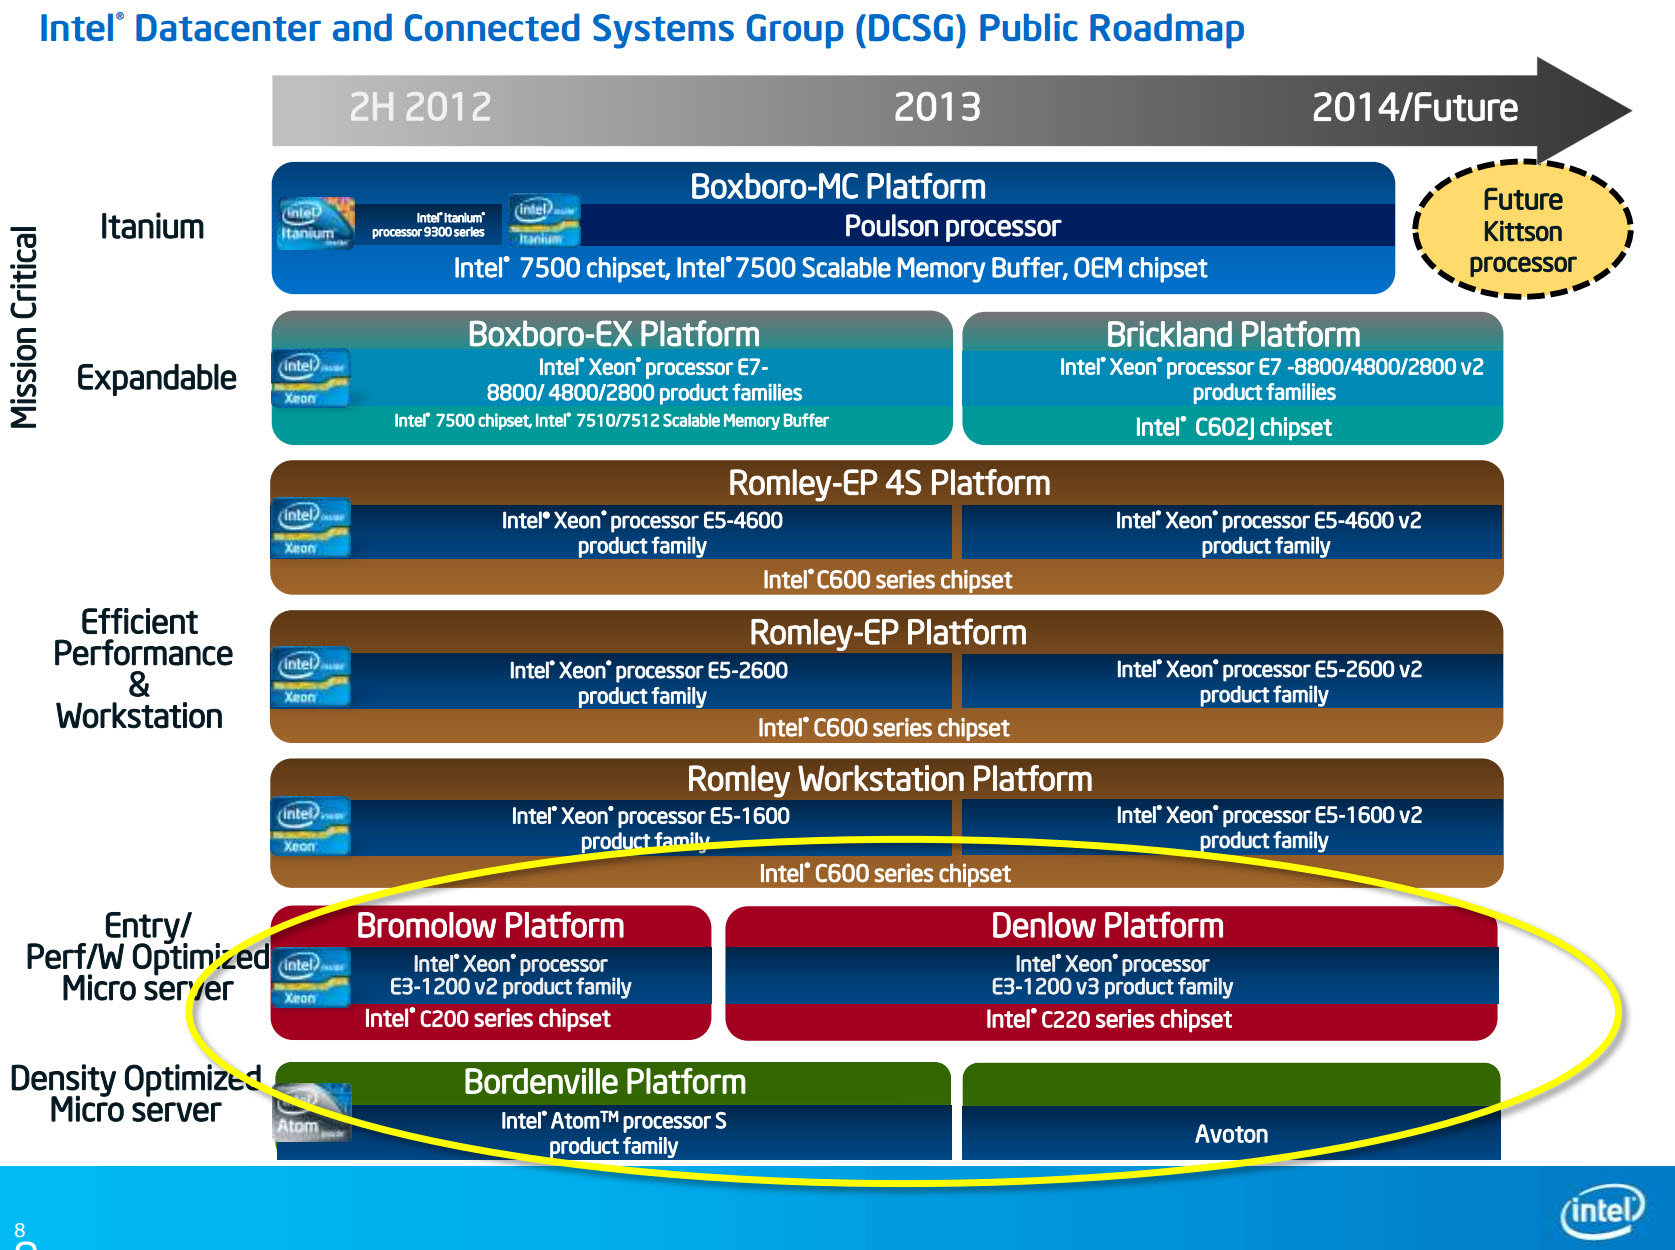 intel datacenter roadmap 2013 2014